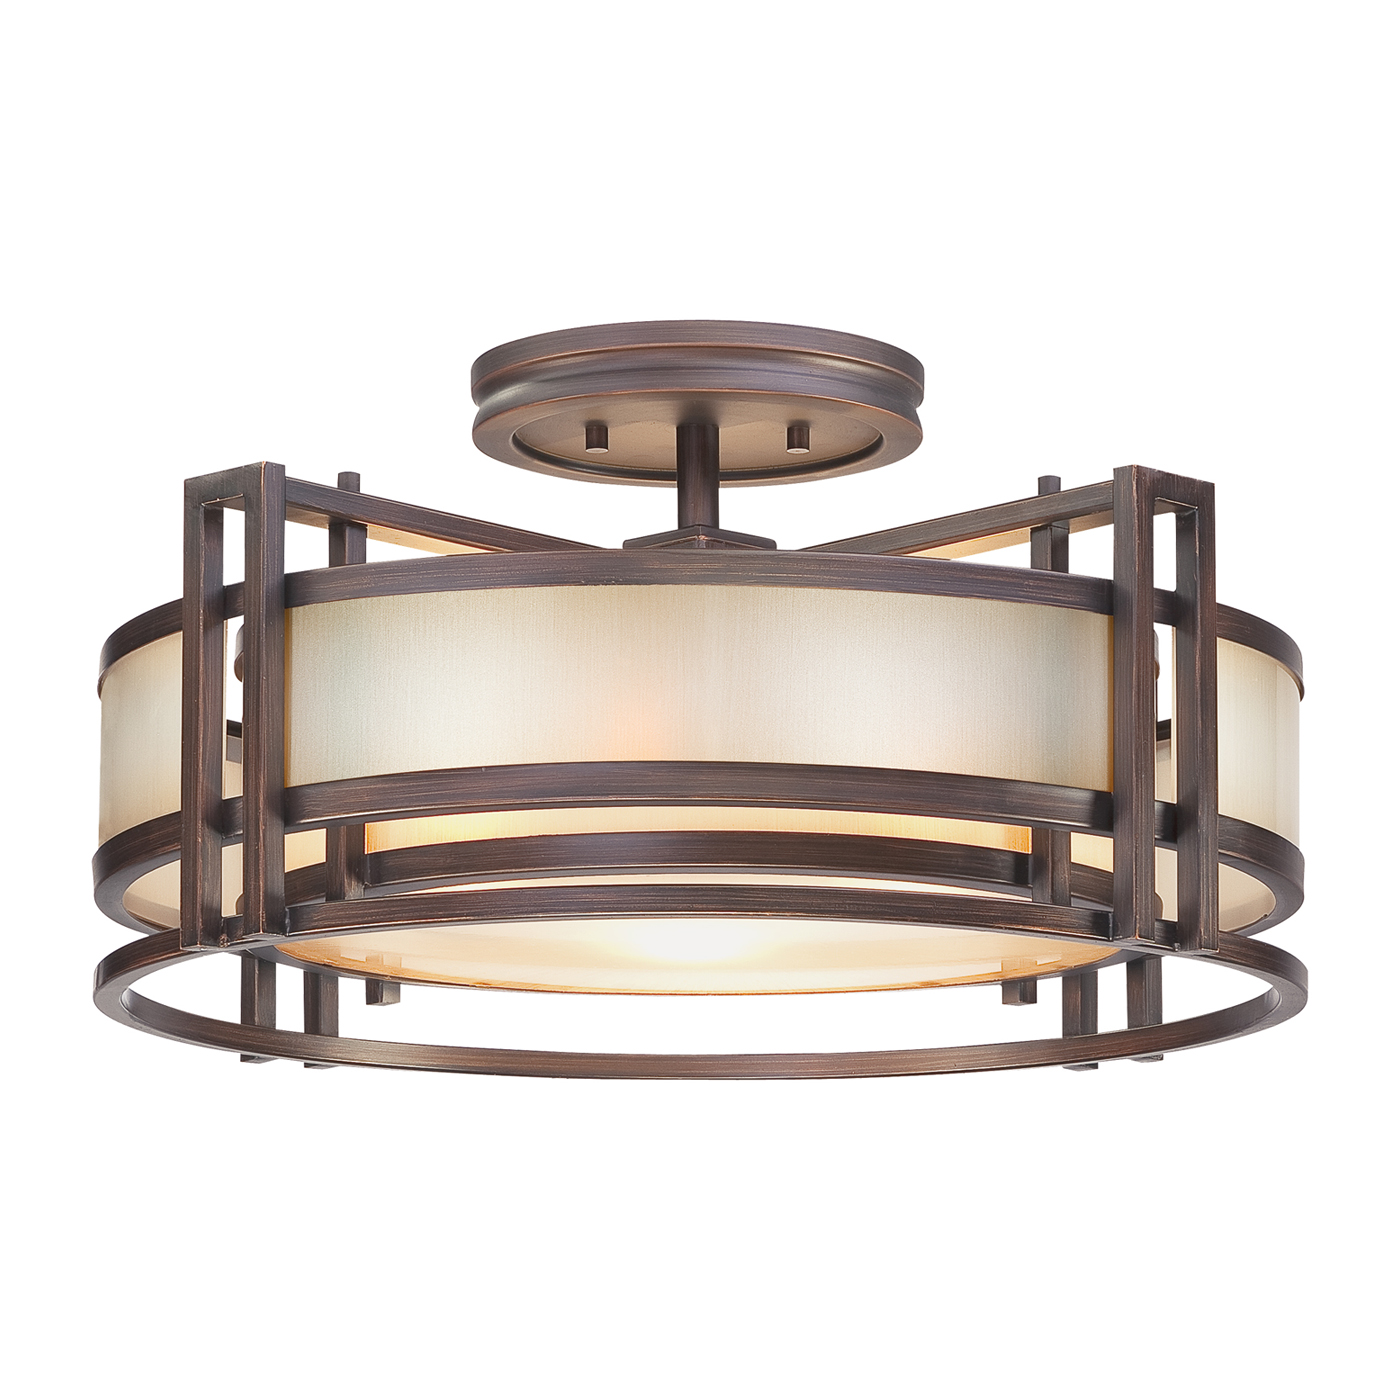 Amazing semi flush ceiling light for home lighting design with brushed nickel semi flush ceiling light